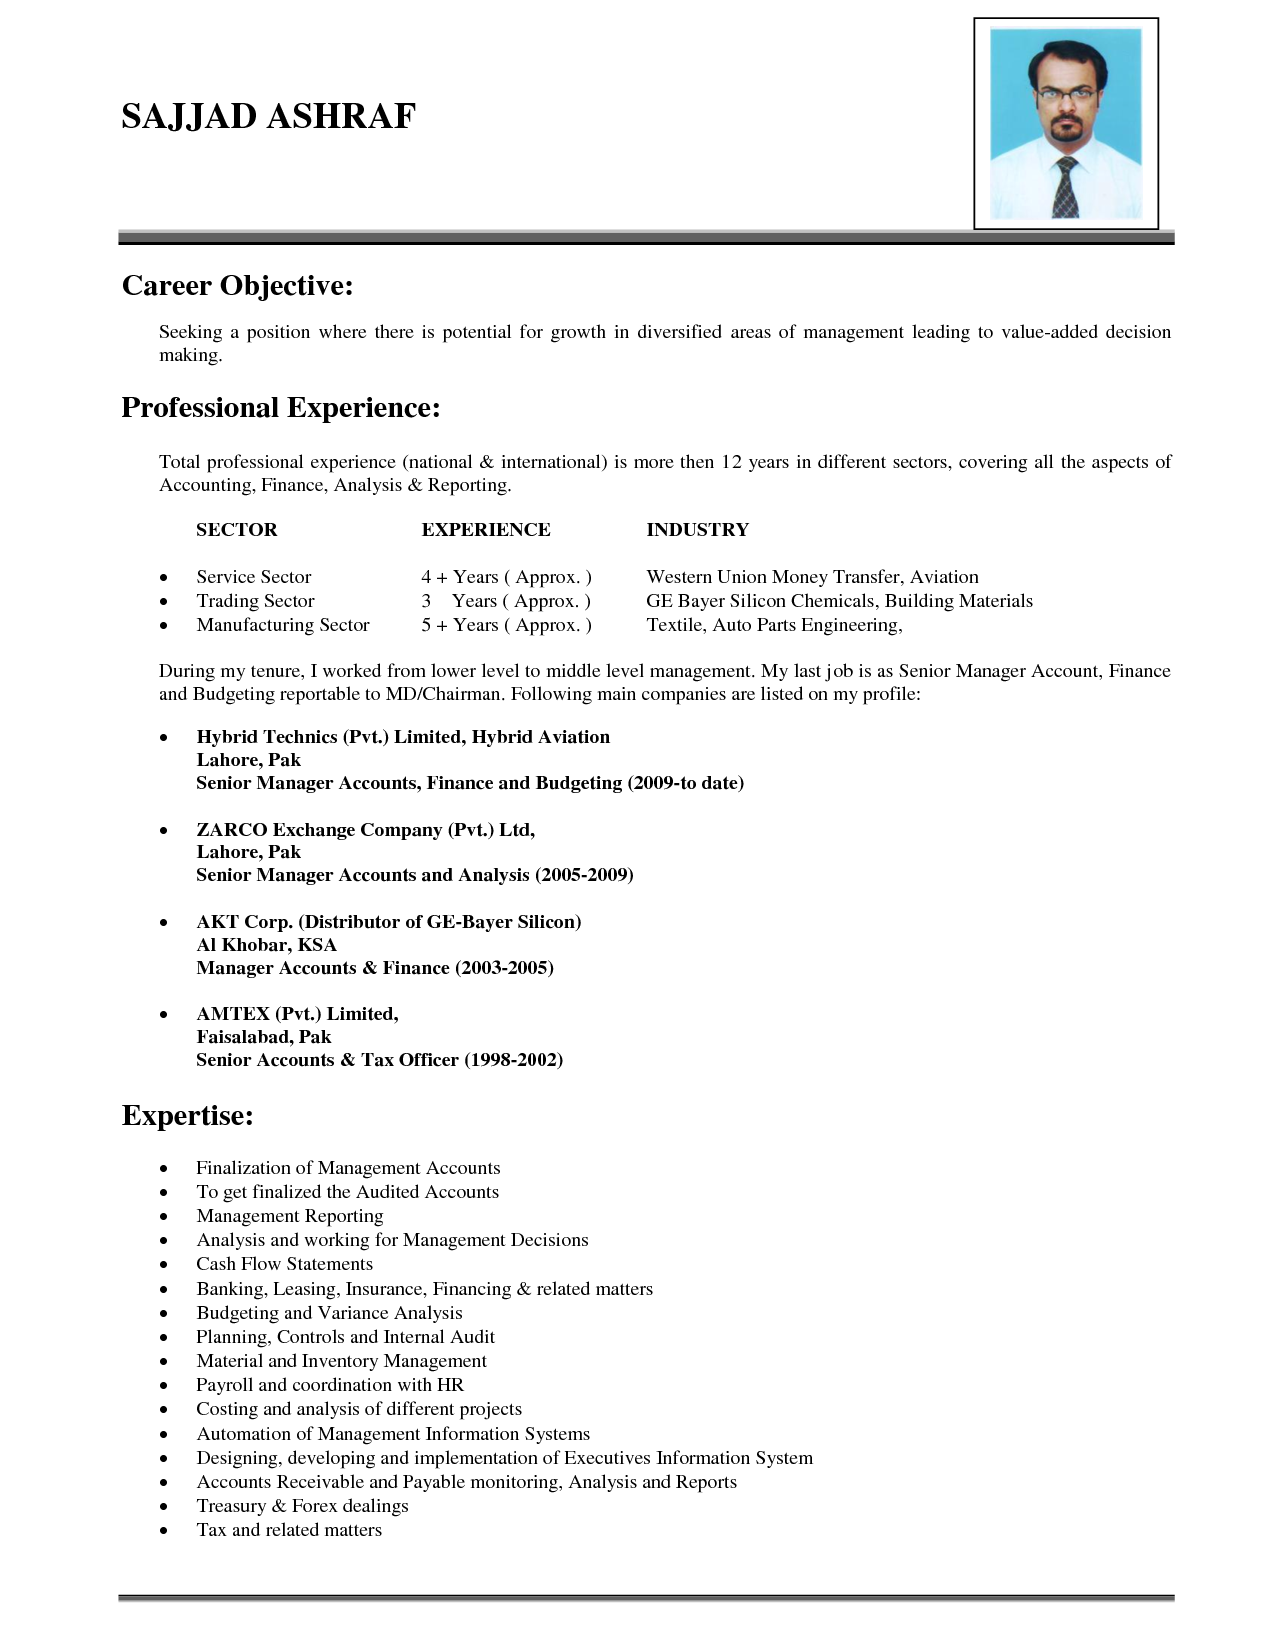 What Are Good Objective Lines For A Resume